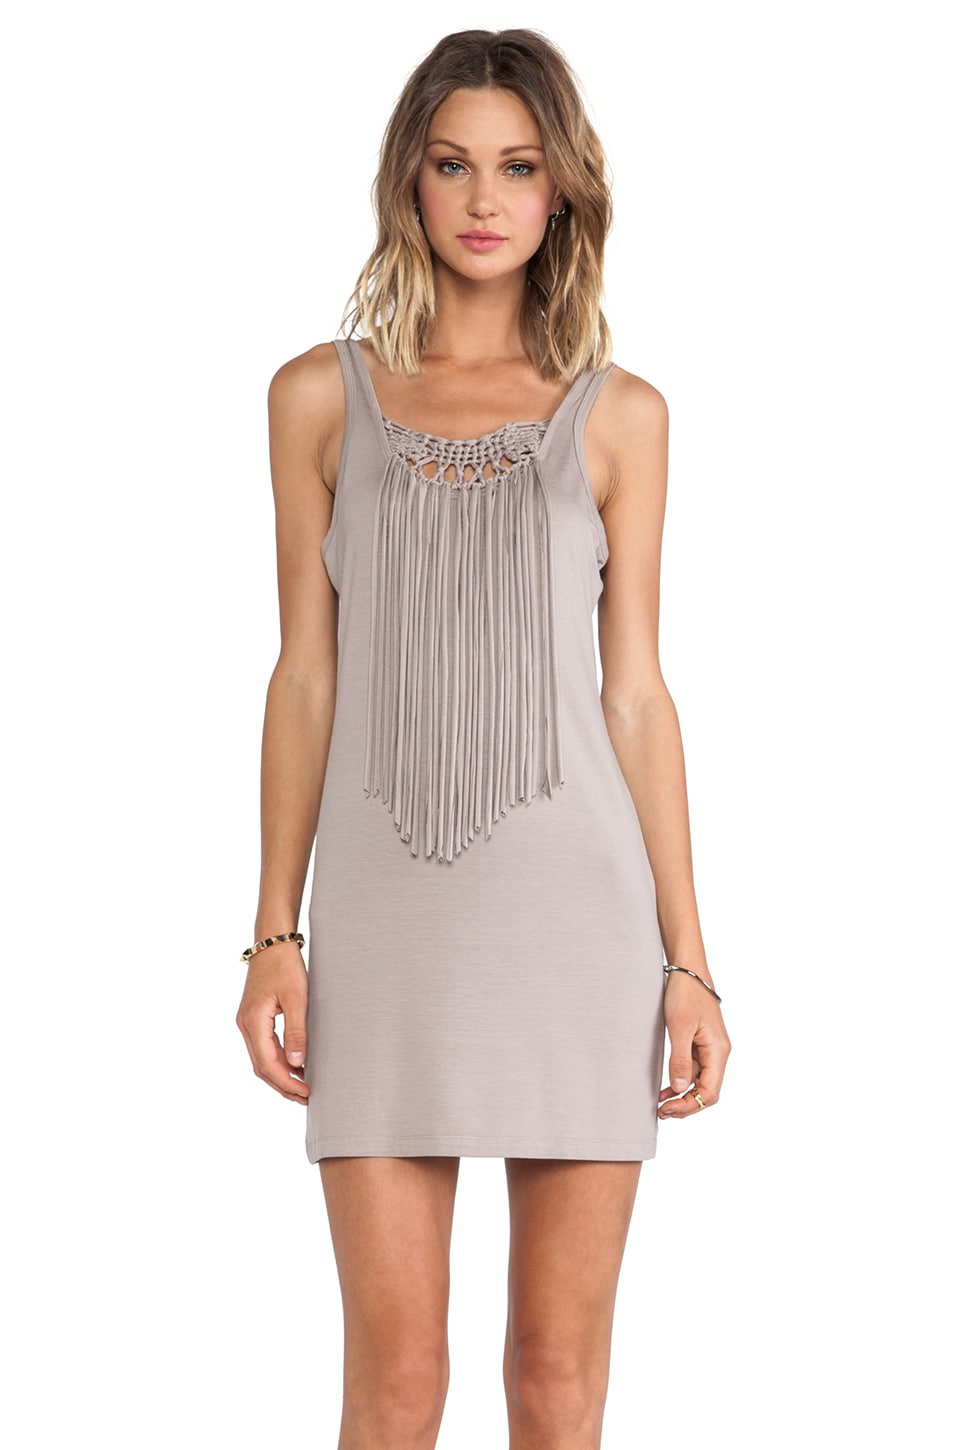 Trina Turk Althea Dress in Taupe